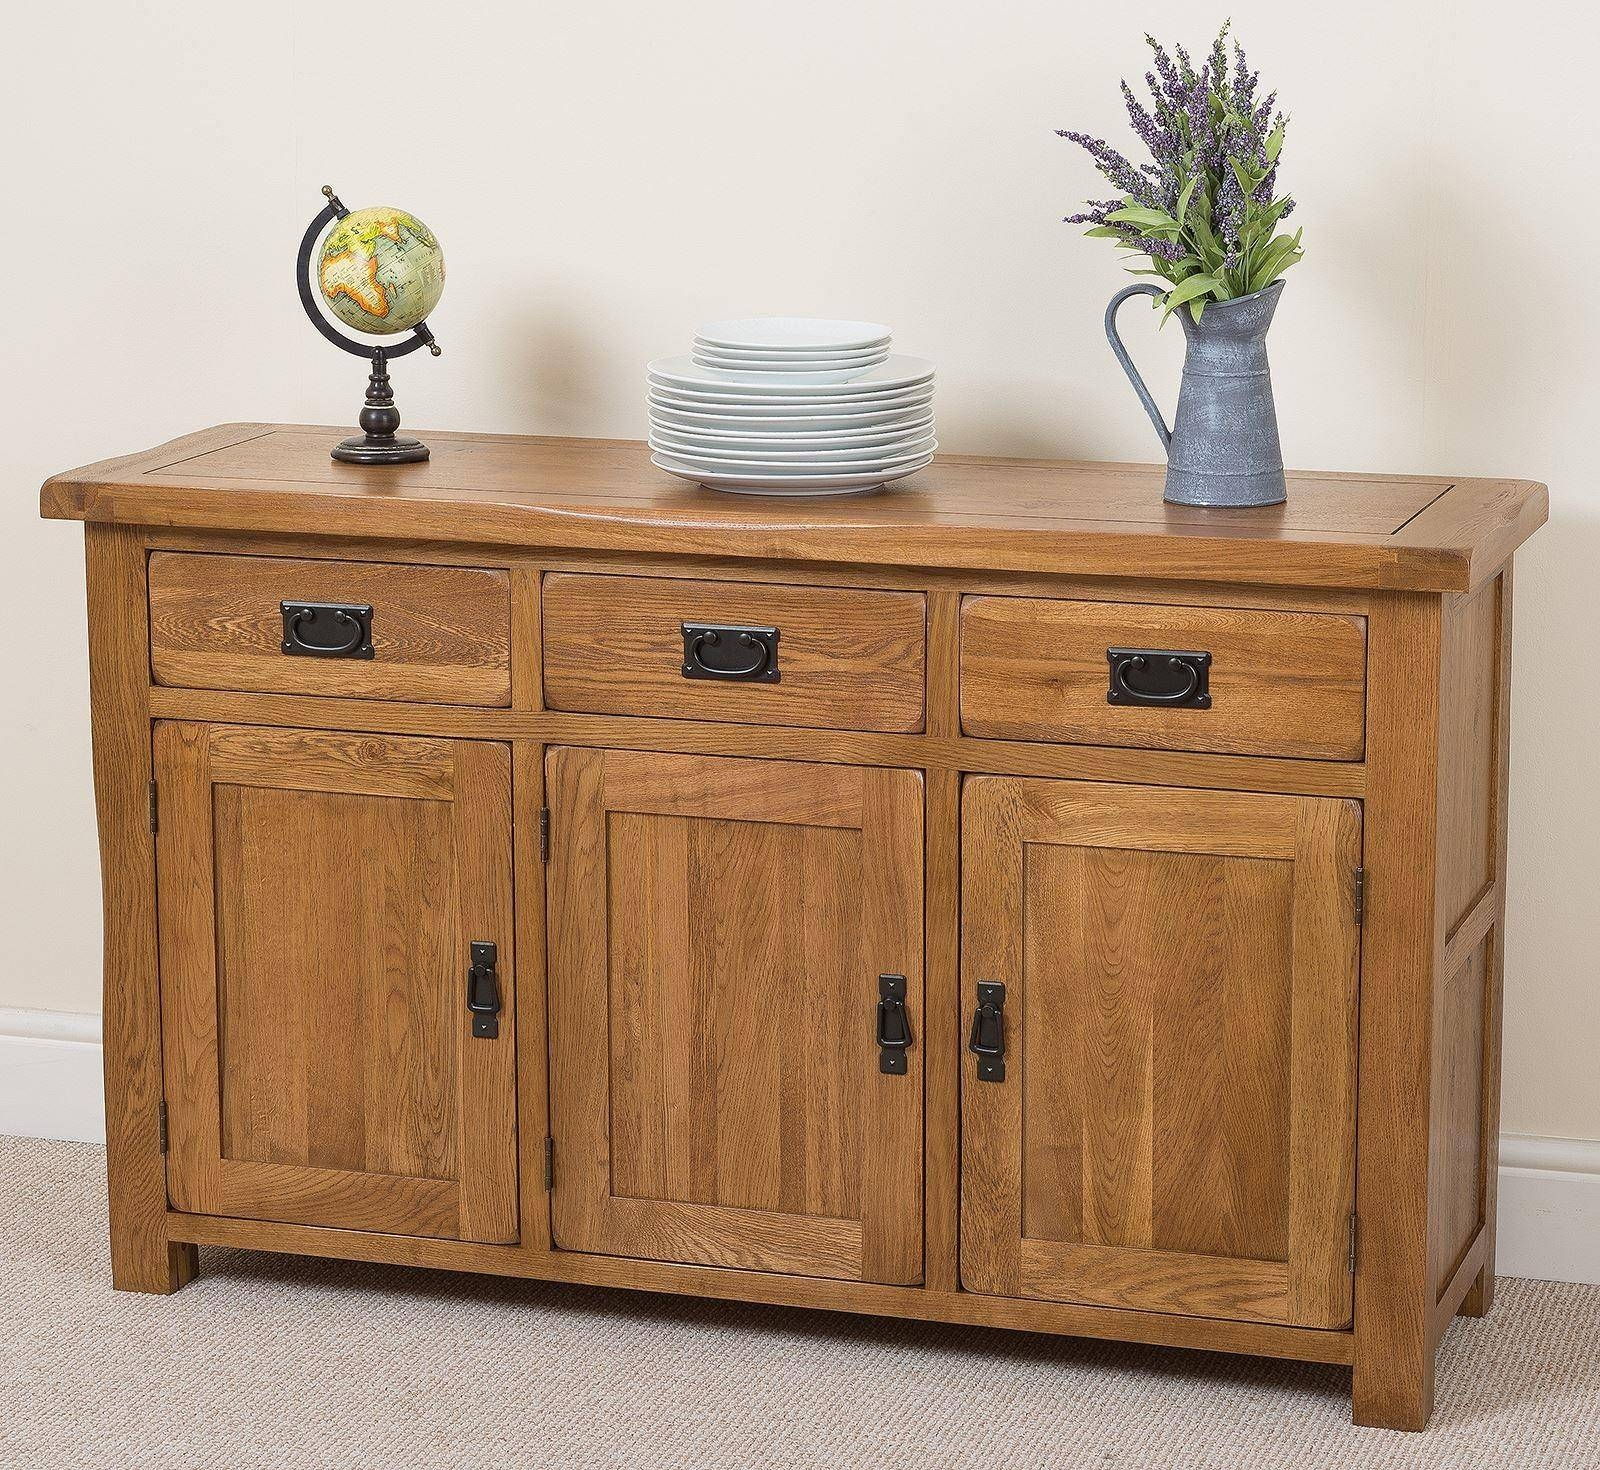 Cotswold Large Oak Sideboard | Free Uk Delivery Throughout Solid Oak Sideboards (View 3 of 15)